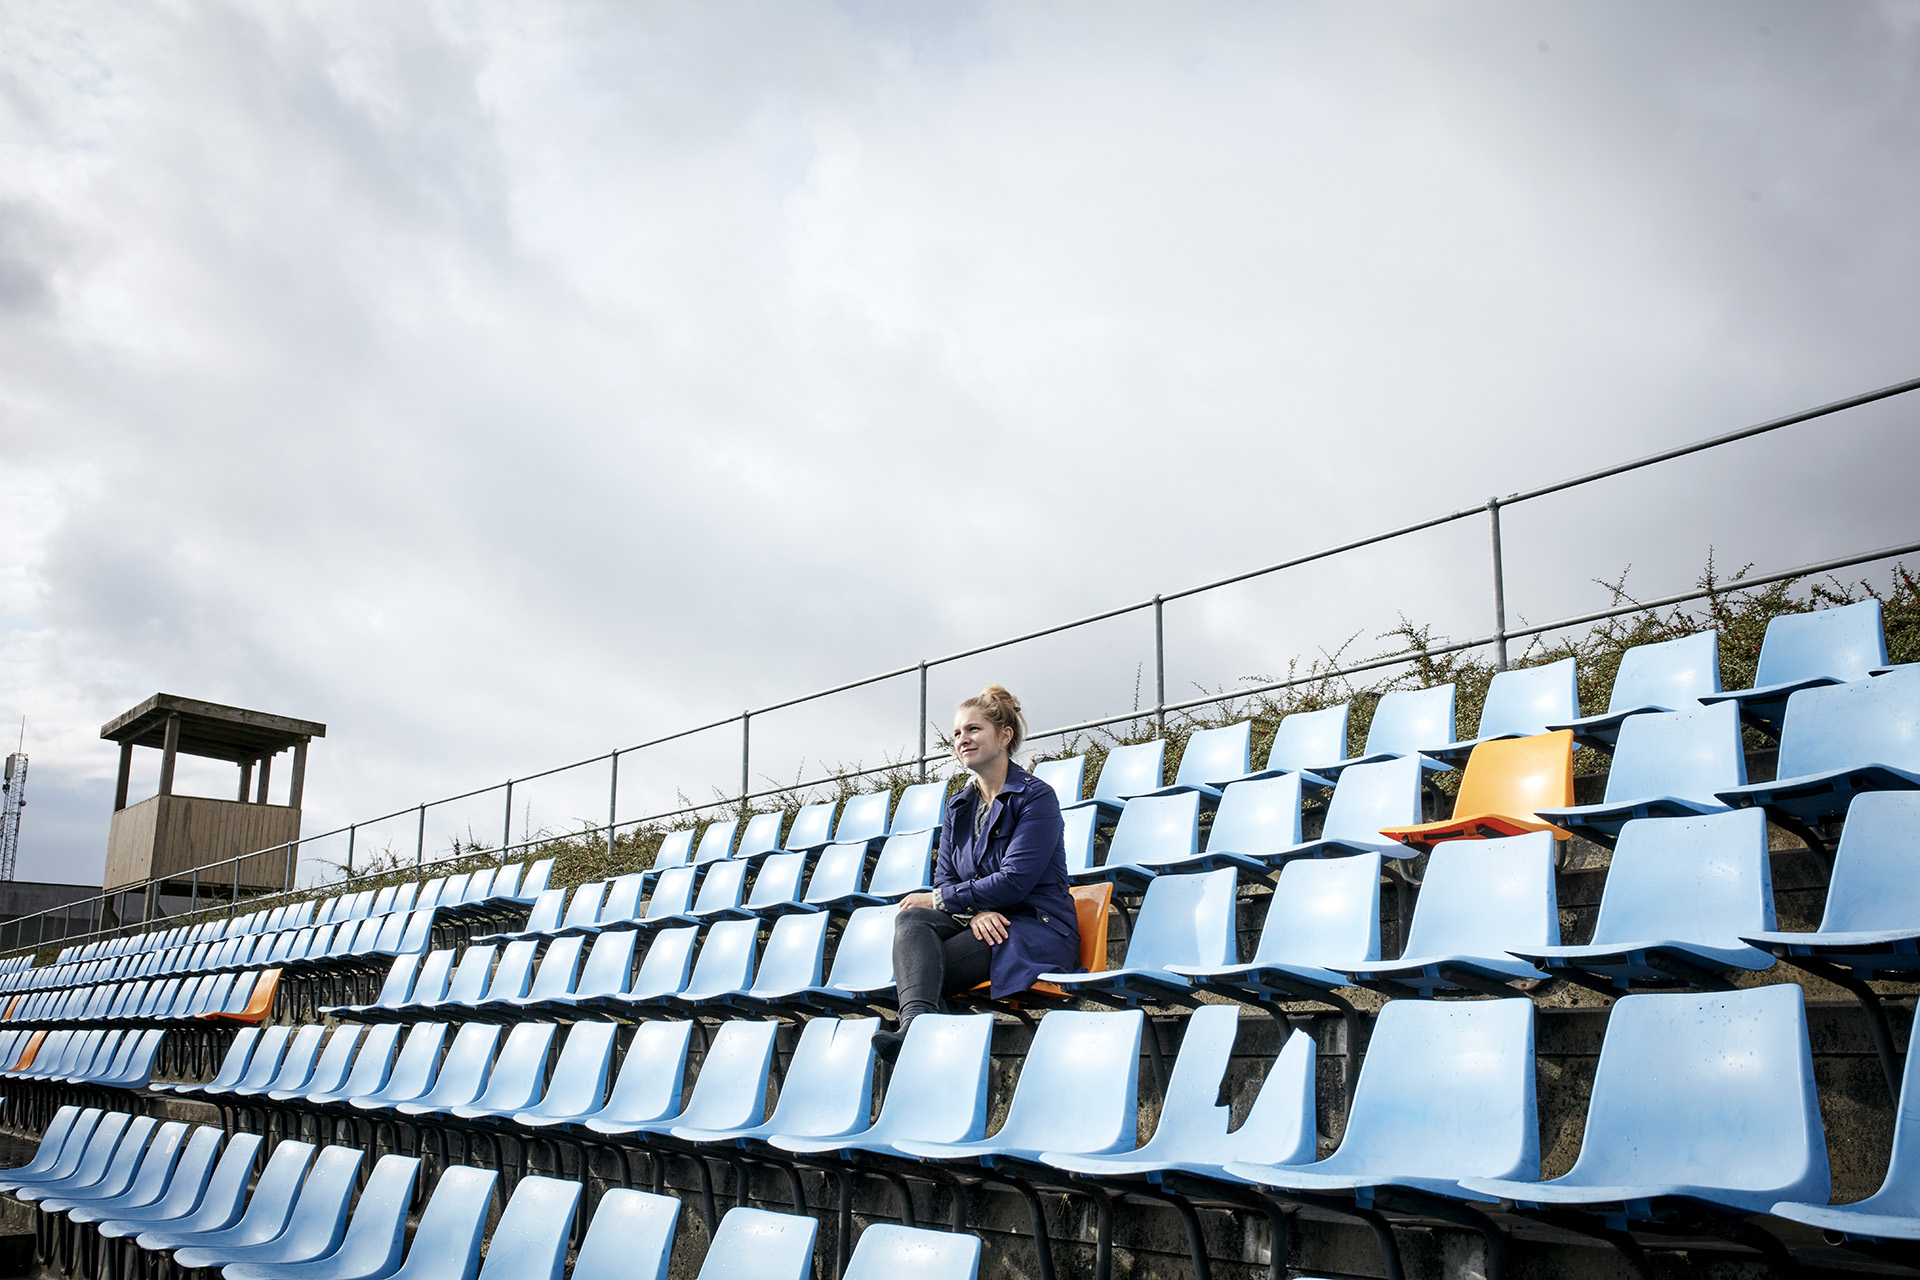 Karen Bay Lindkvist works as an urban planner in Brøndby municipality. She is in the process of transforming a parking lot at Brøndby Stadium into a vibrant area.